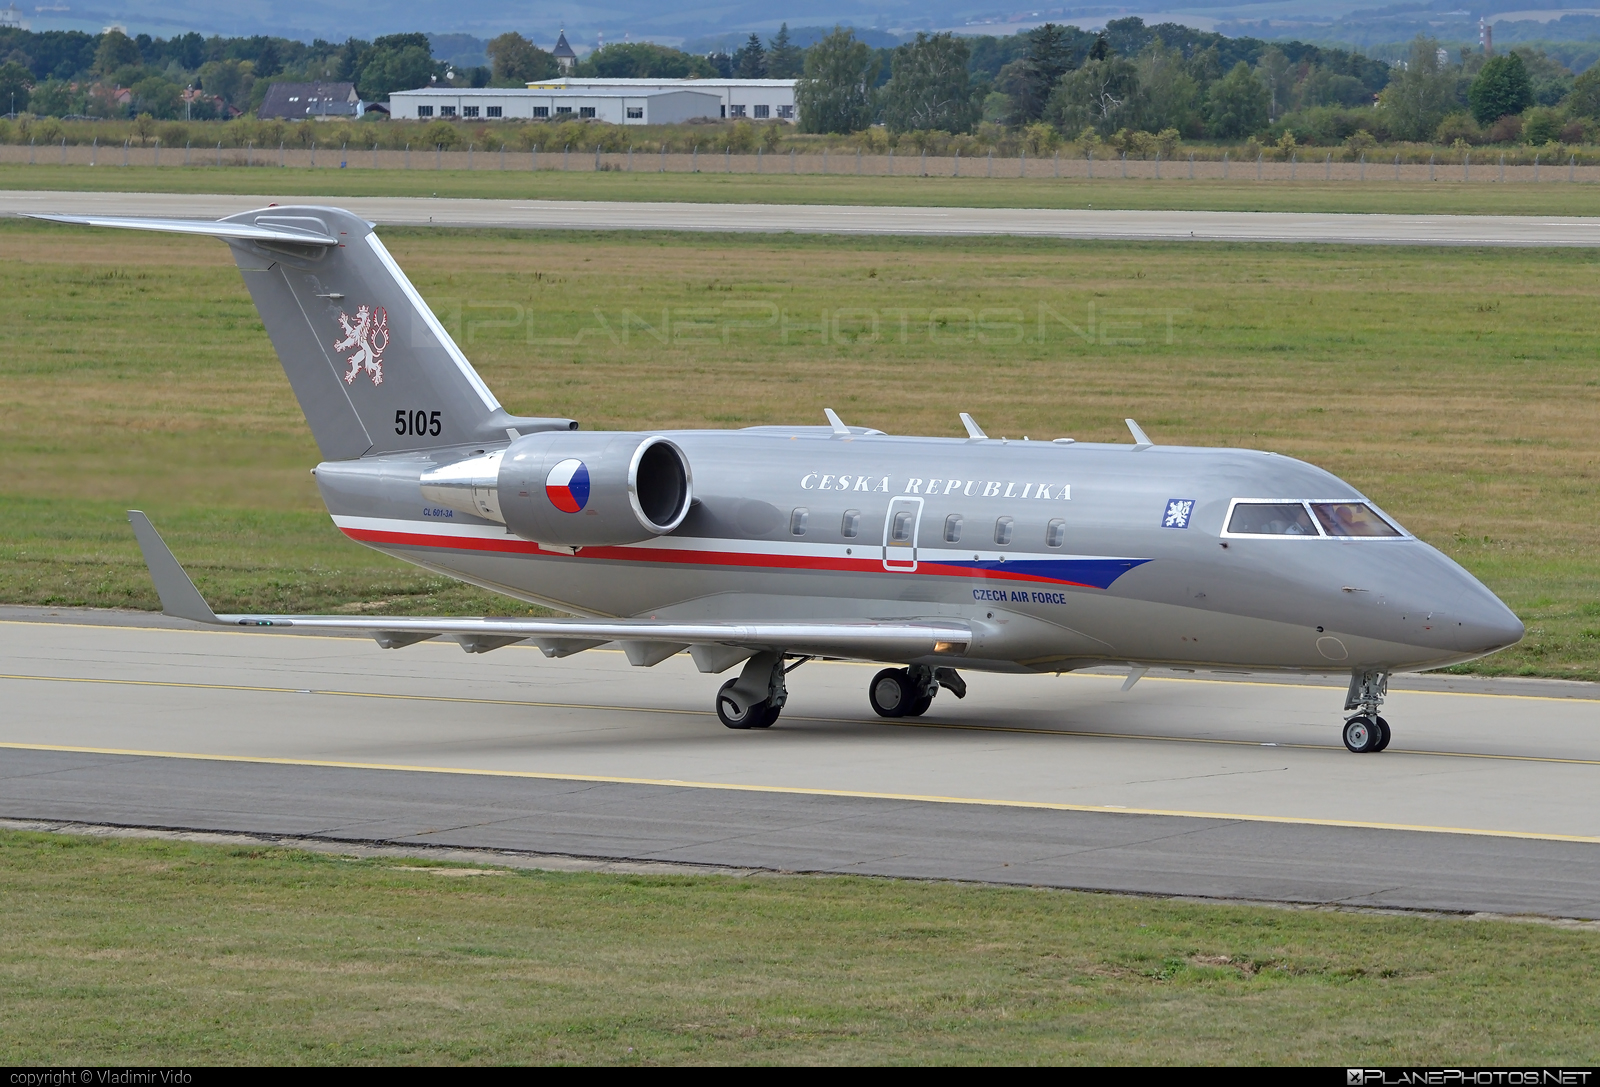 Bombardier Challenger 601-3A (CL-600-2B16) - 5105 operated by Vzdušné síly AČR (Czech Air Force) #bombardier #challenger601 #challenger6013a #cl6002b16 #czechairforce #vzdusnesilyacr